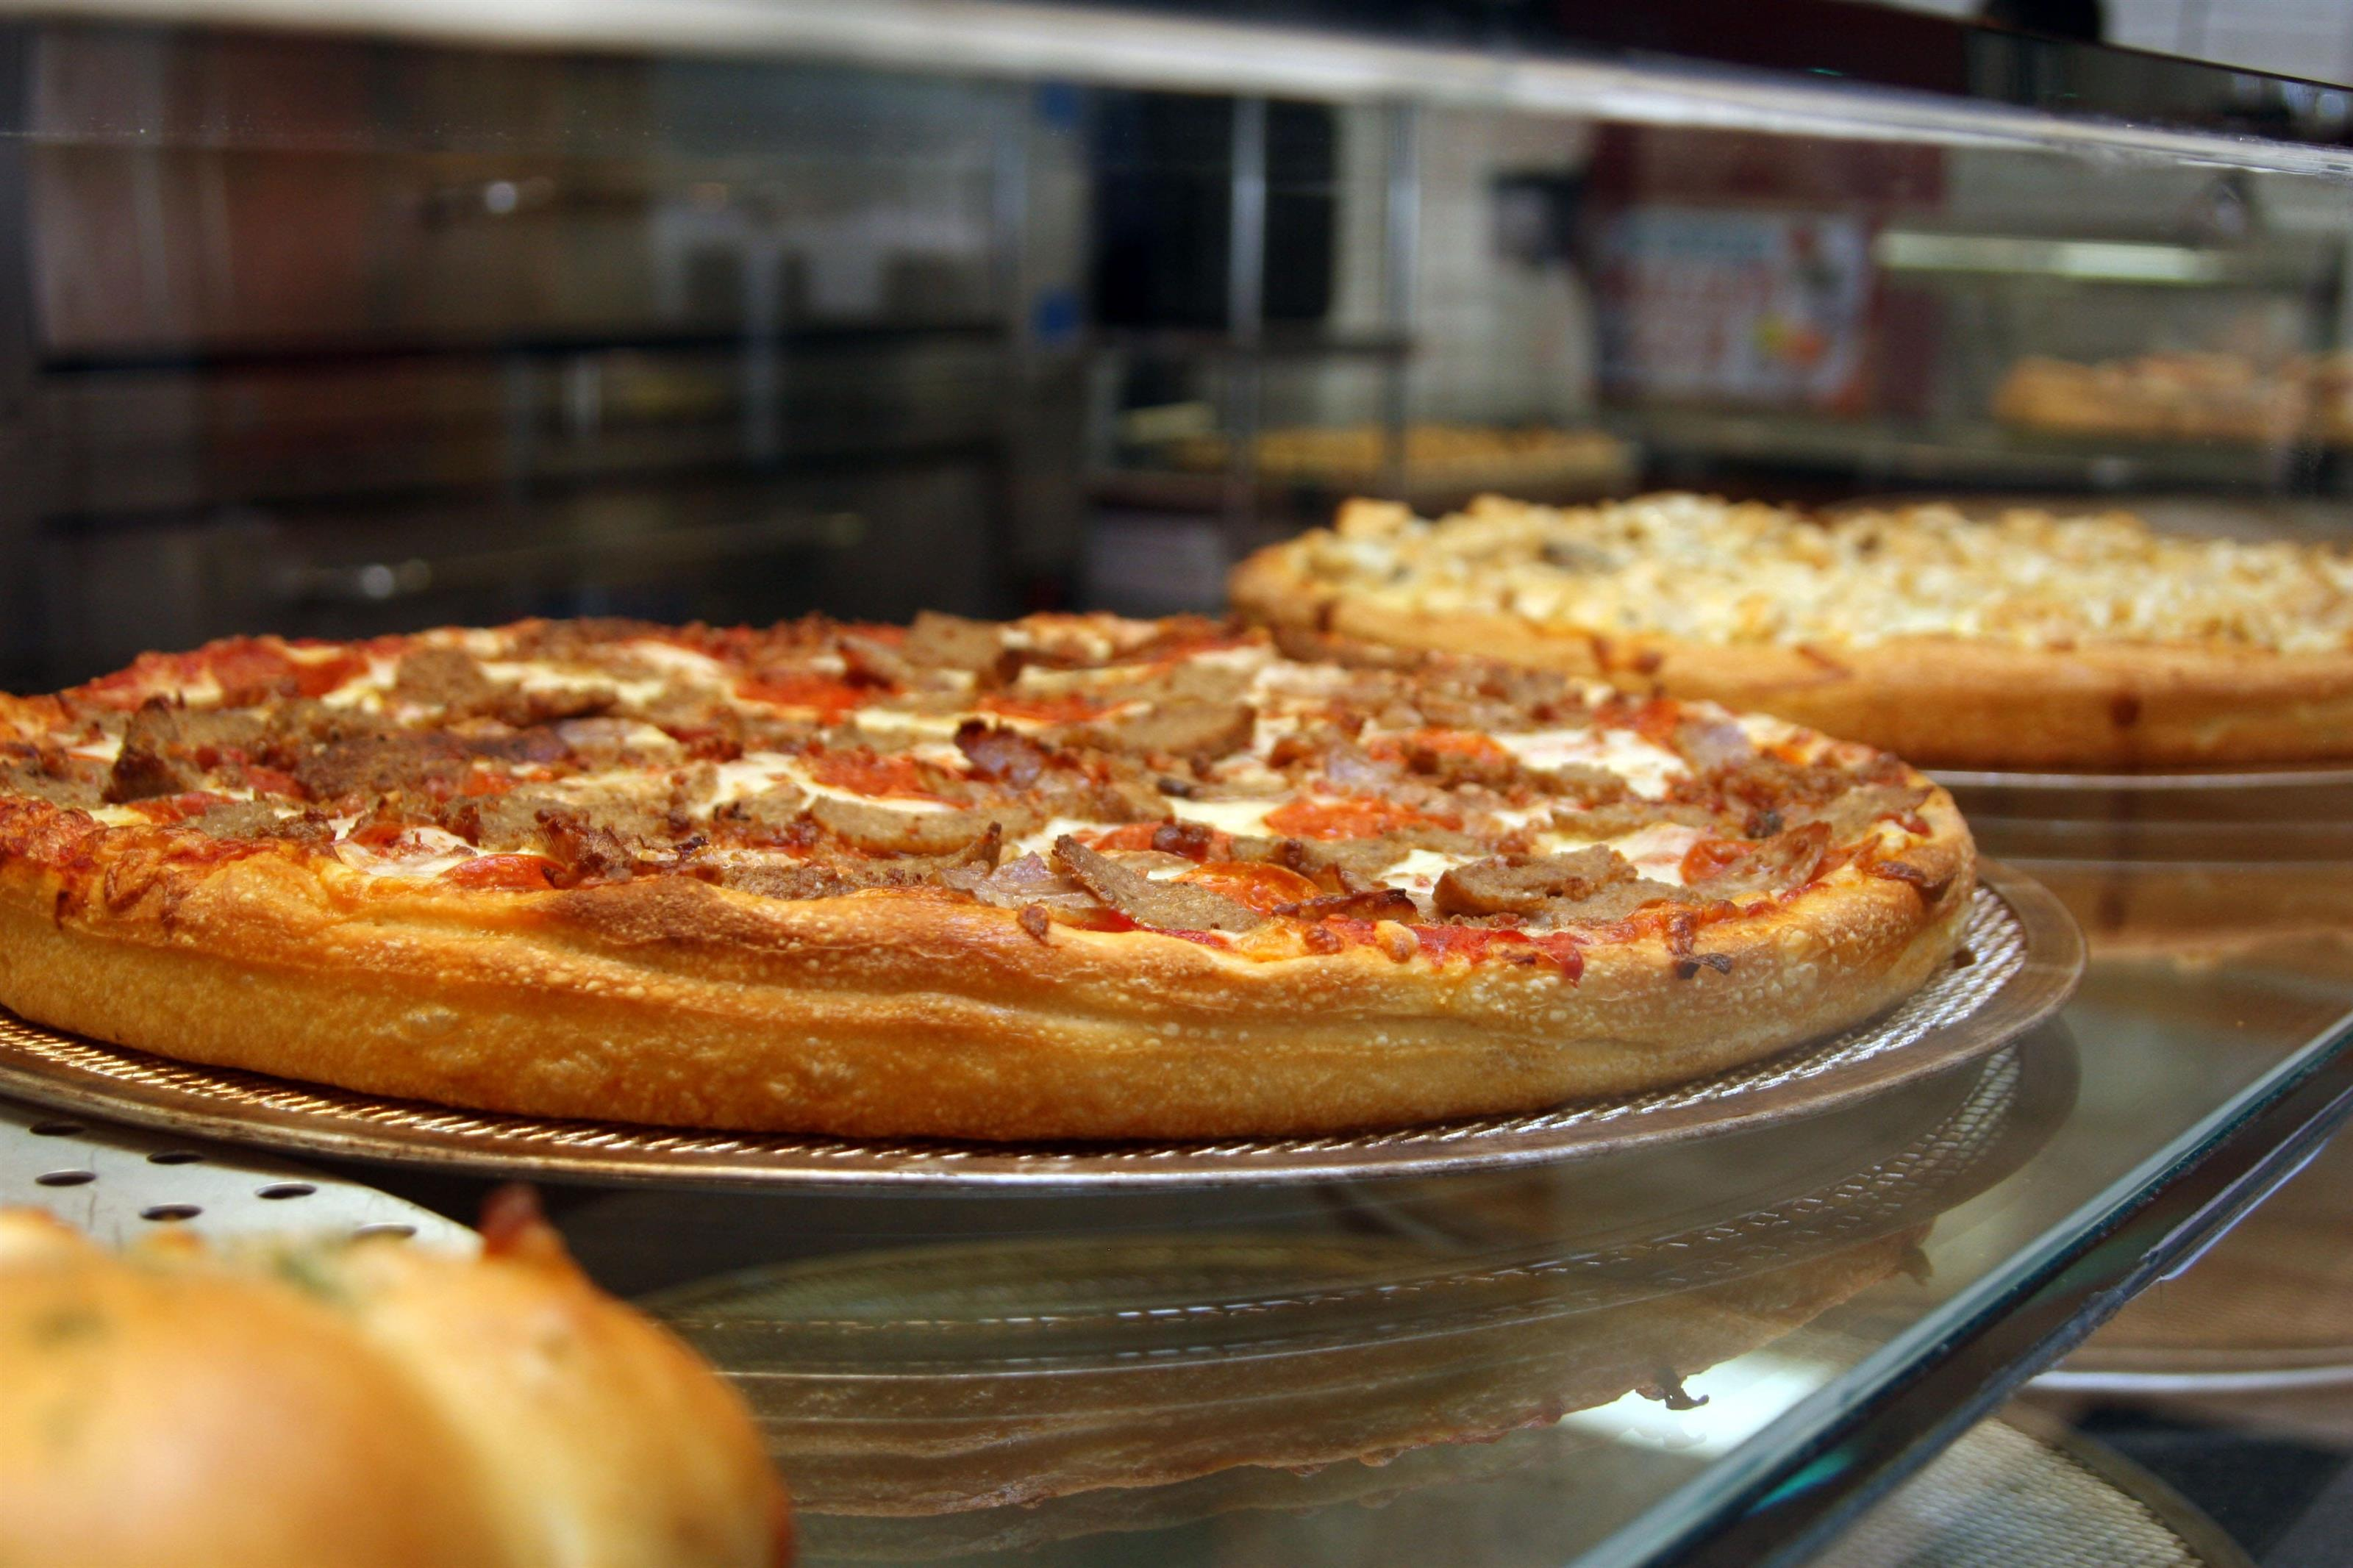 Pizza Pies in Display